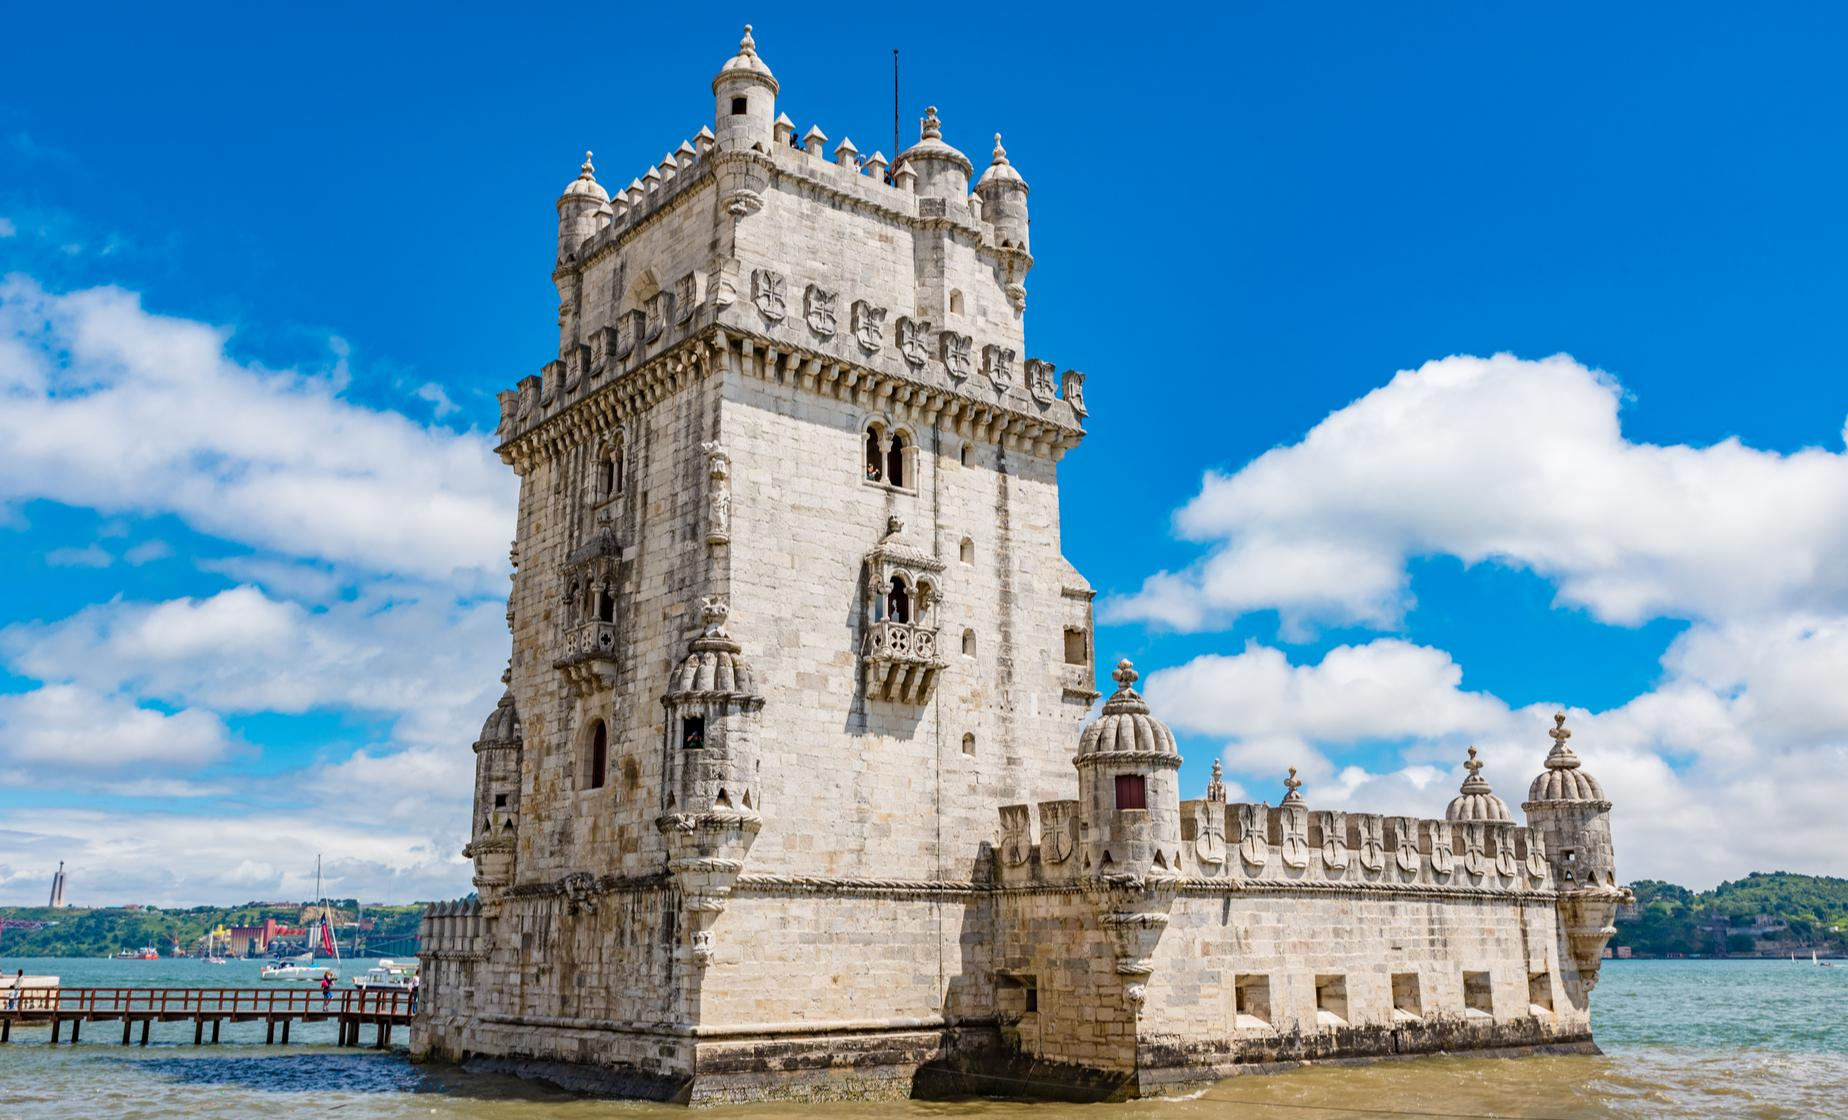 Full Day Lisbon and Fatima Tour (Belem Tower, Monument to the Discoveries)